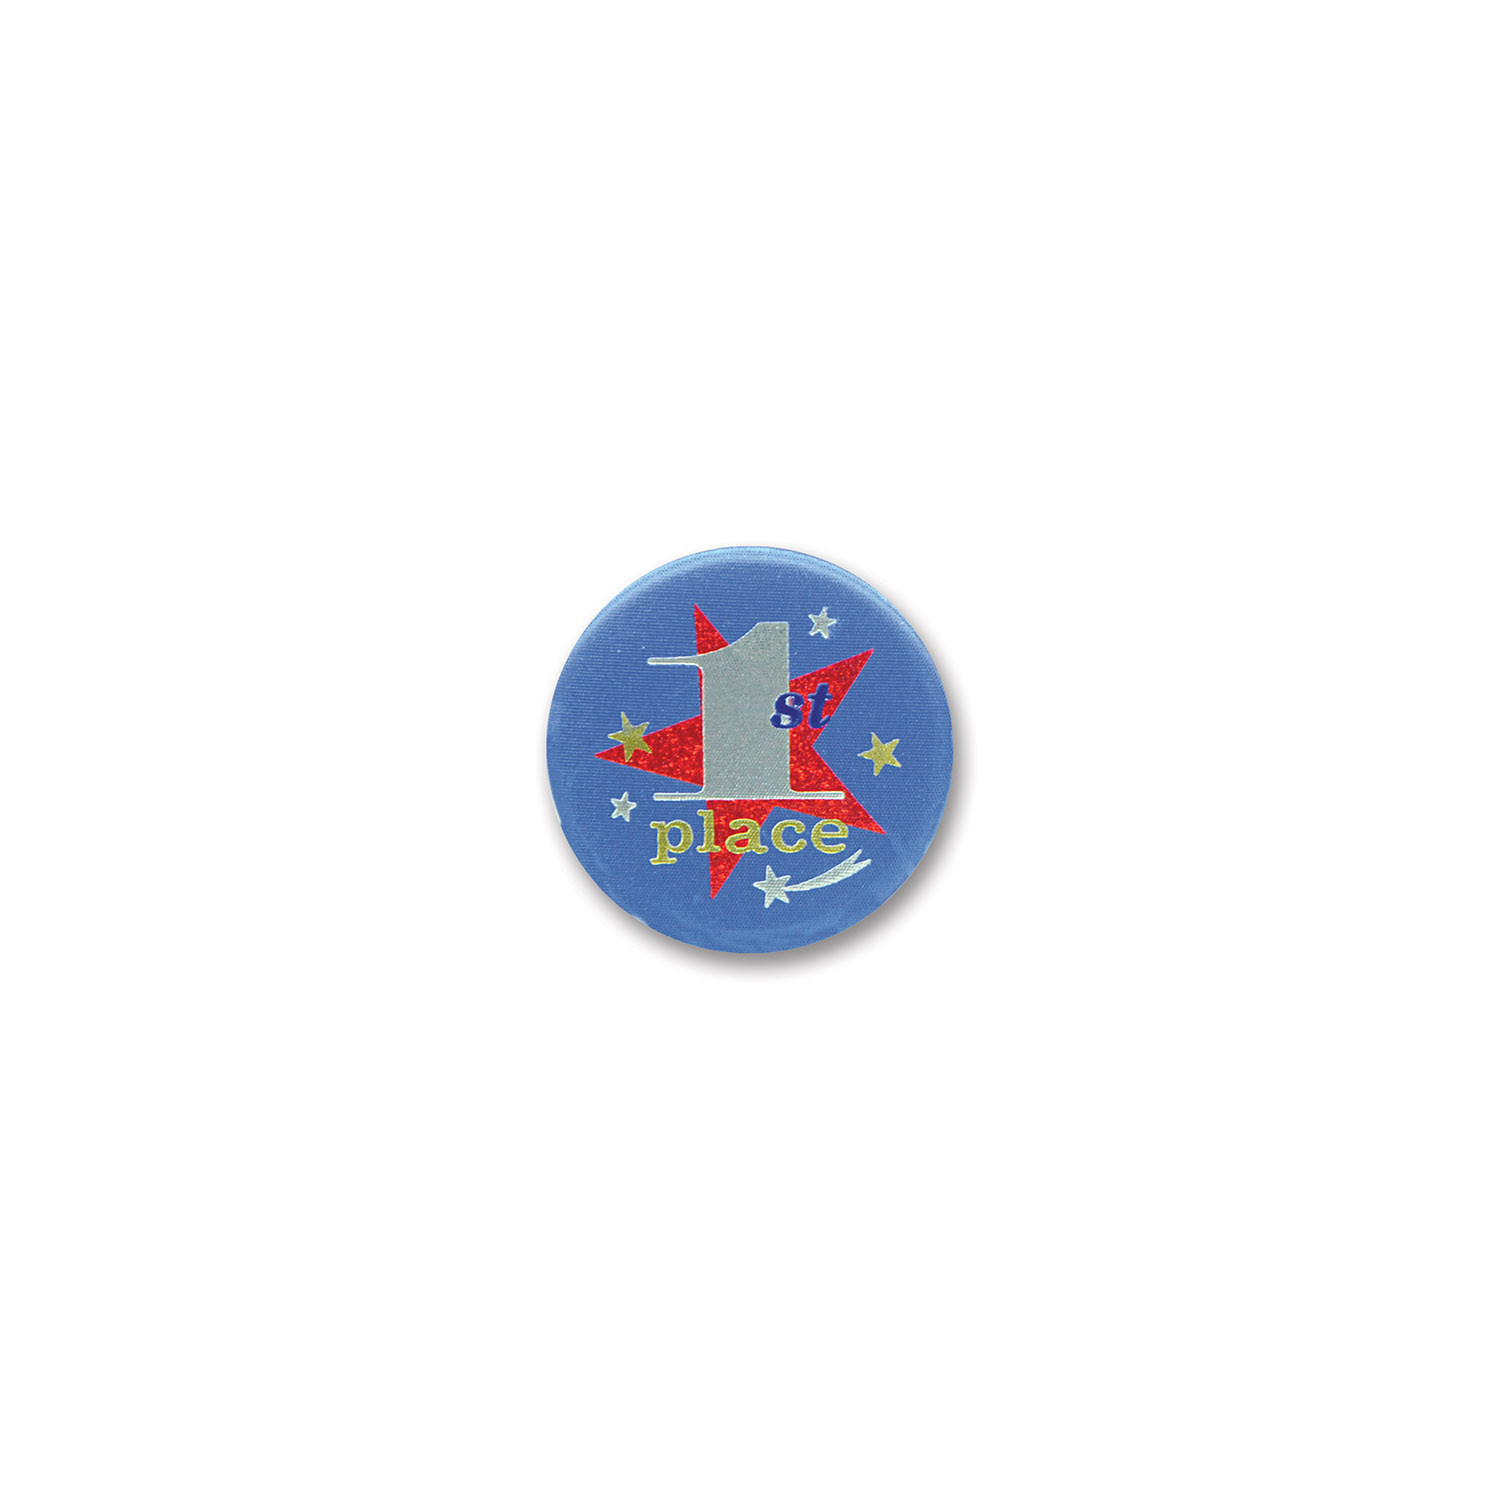 1st Place Satin Button (Pack of 6) Satin Button, 1st Place, Award button, Cheap award, Wholesale party supplies, Inexpensive reward, Sports award, Bulk buttons